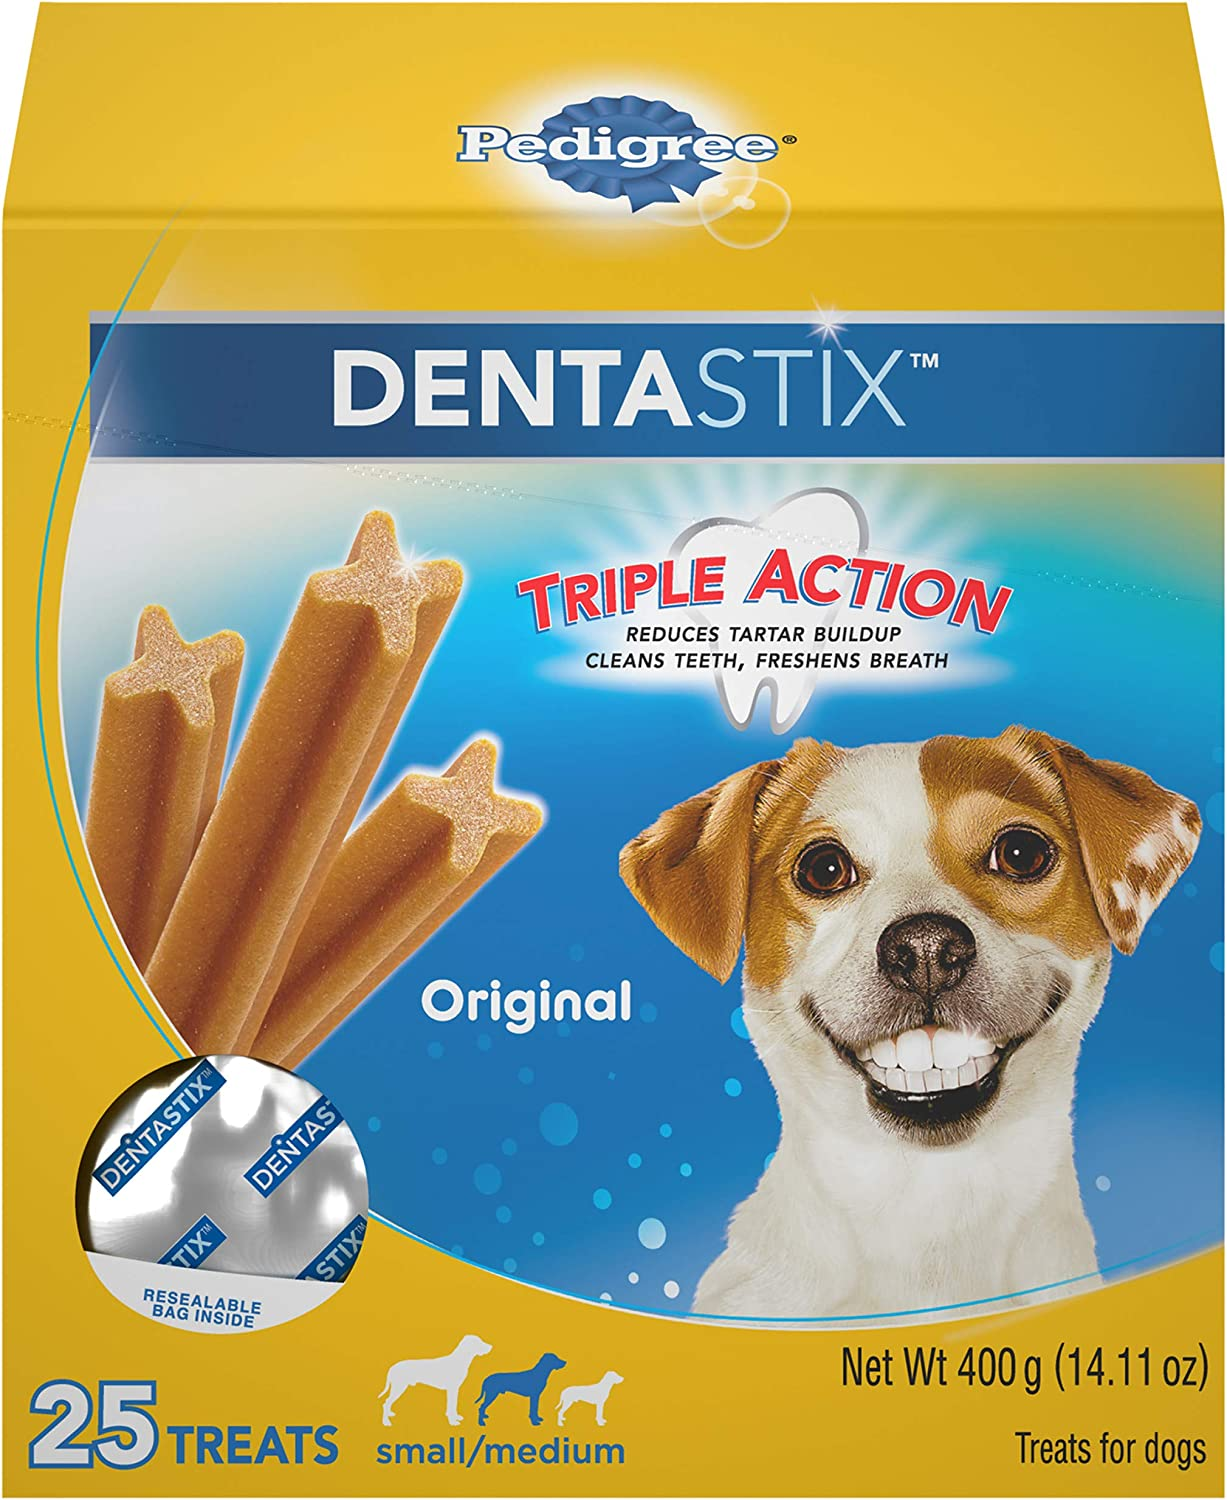 Pedigree DENTASTIX Treats for Small/Medium dogs, 15-40 lbs.